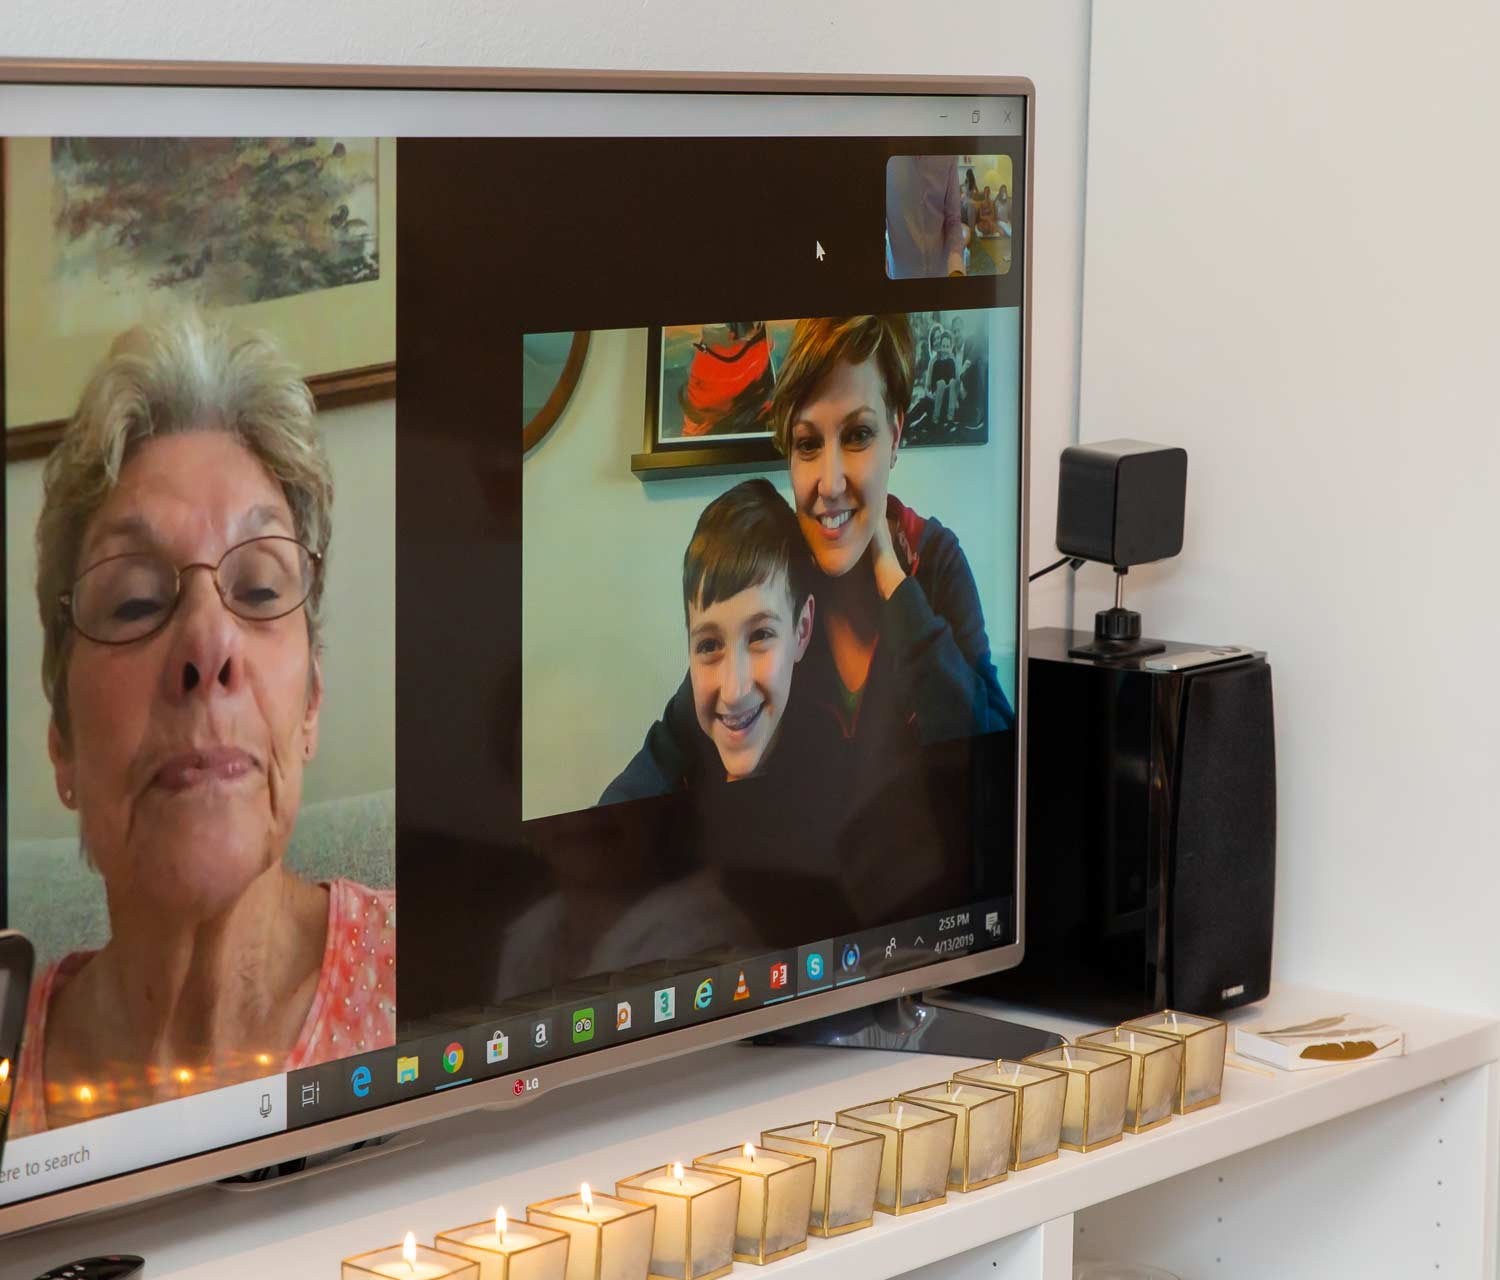 My mom (left) and good friend Jennifer (right) with her son, Henri, joining the ceremony virtually via Skype.